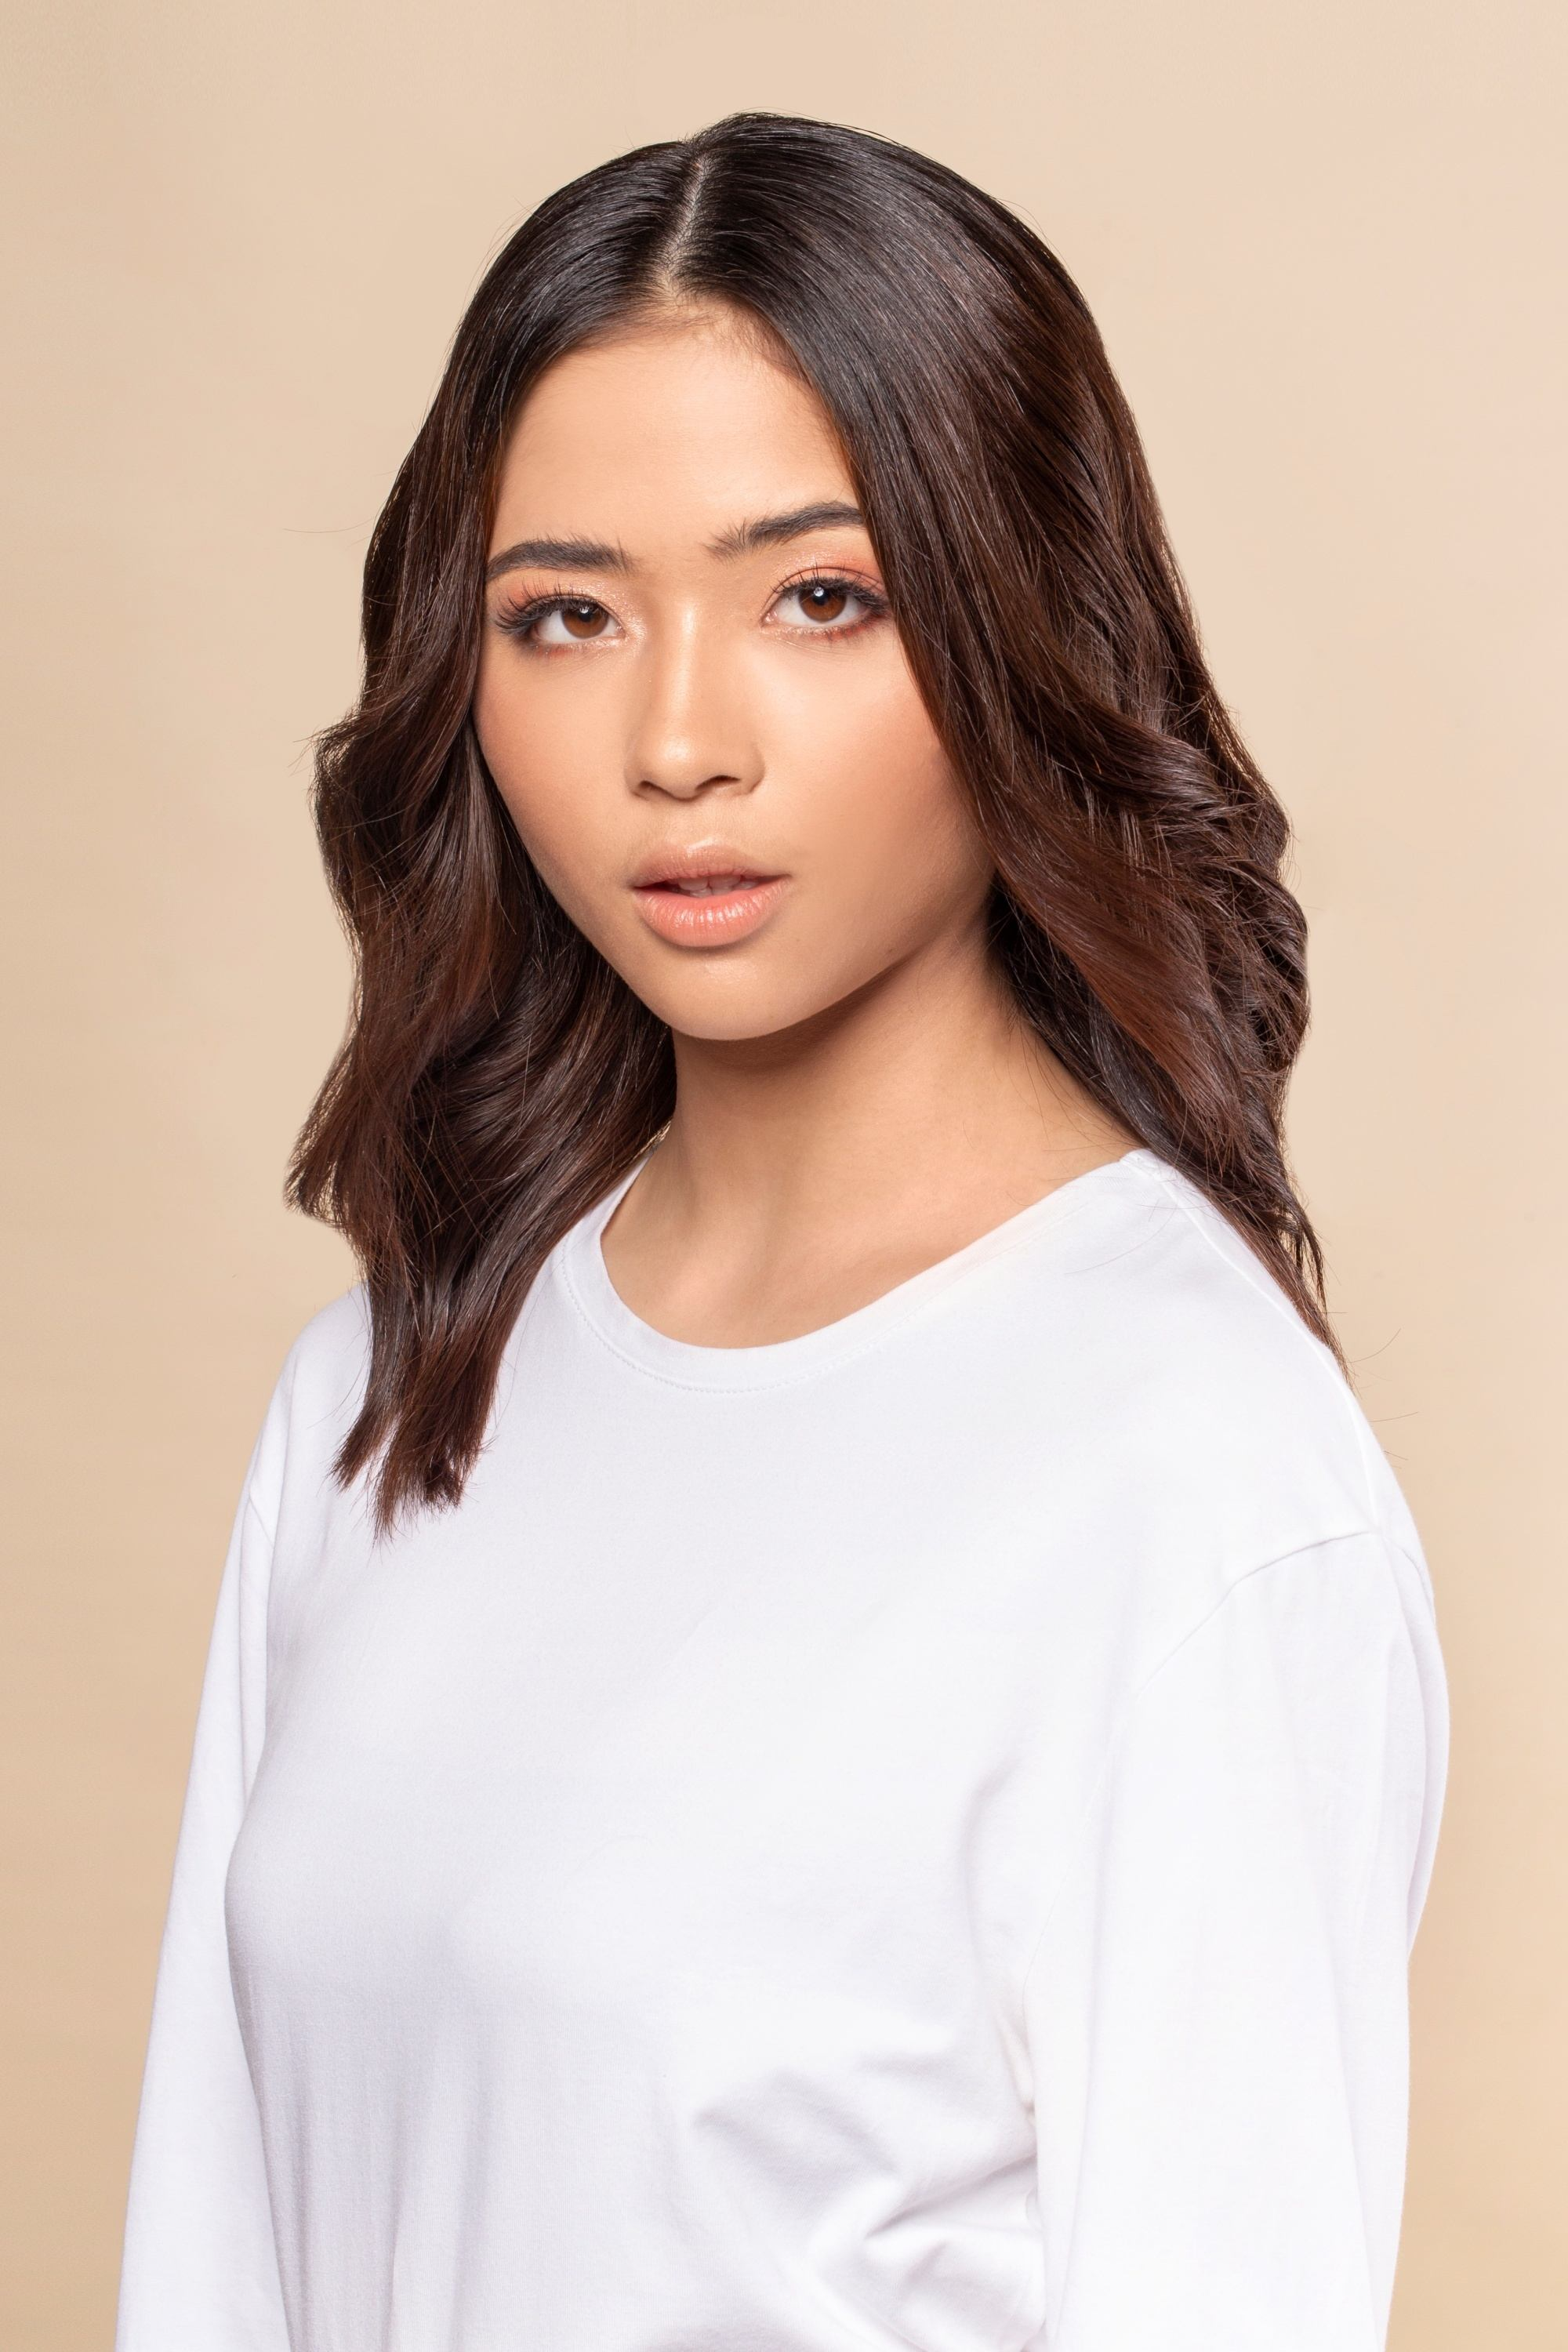 Asian woman with chocolate brown hair color wearing a white top